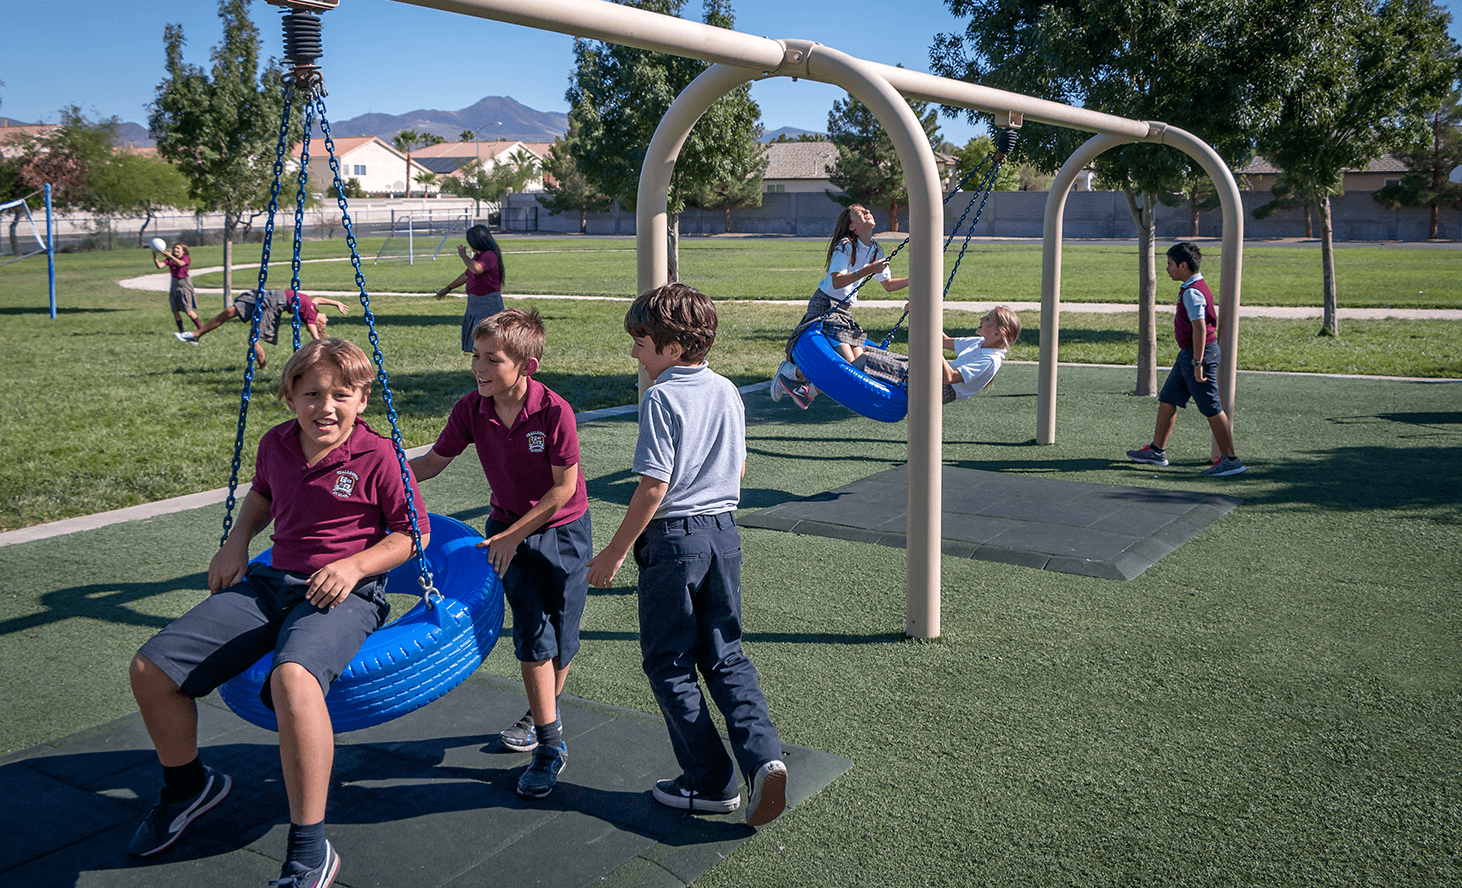 Swing | Challenger School - Silverado | Private School In Las Vegas, Nevada